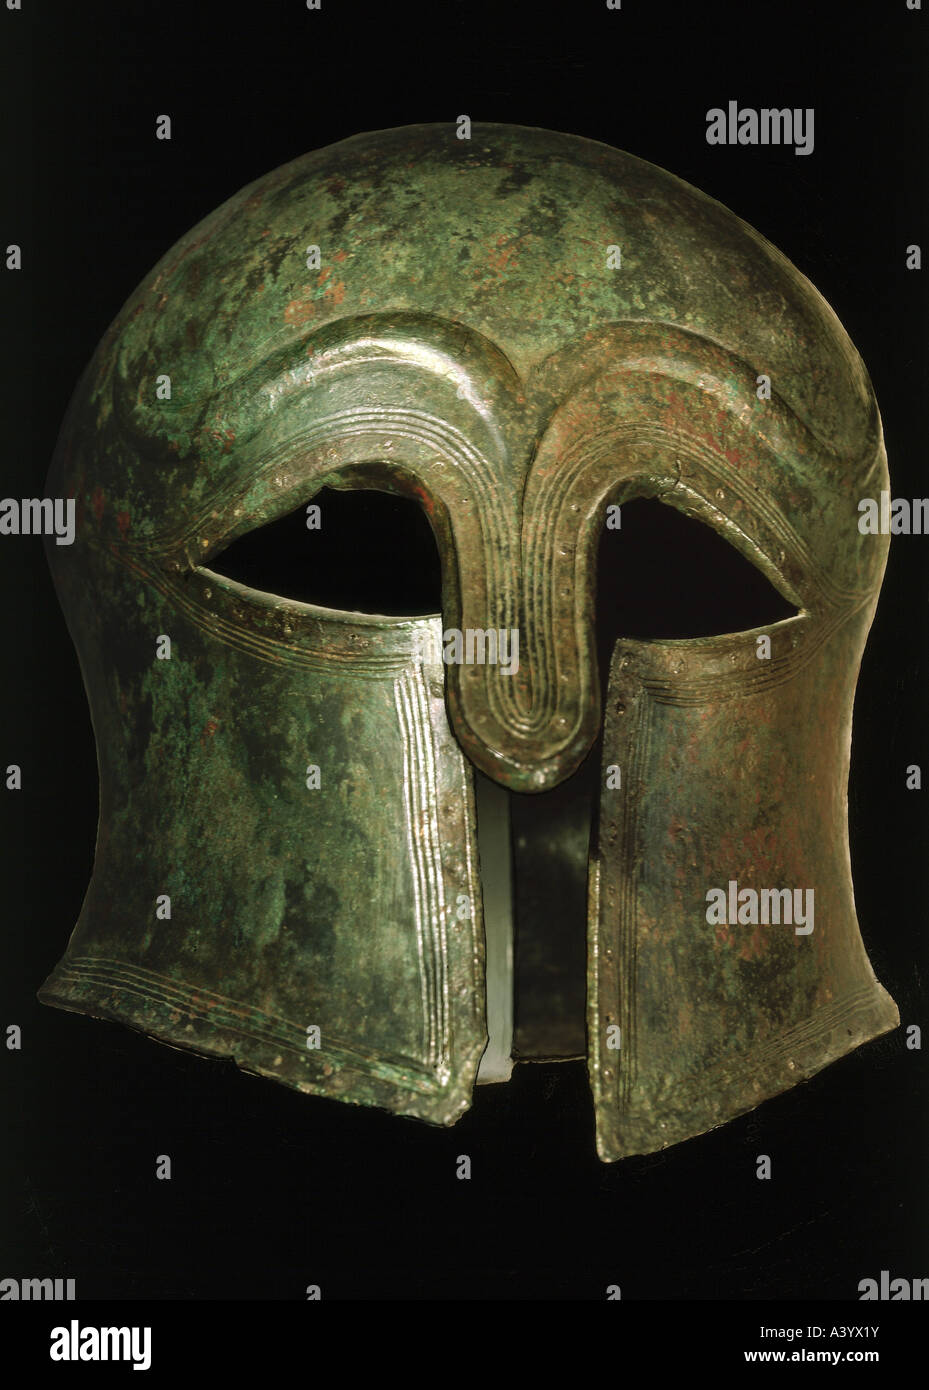 weapons/arms, defensive arms, helmets, Corinthian helmet from lower Italy, late 6th century BC, bronze, Landesmuseum - Stock Image